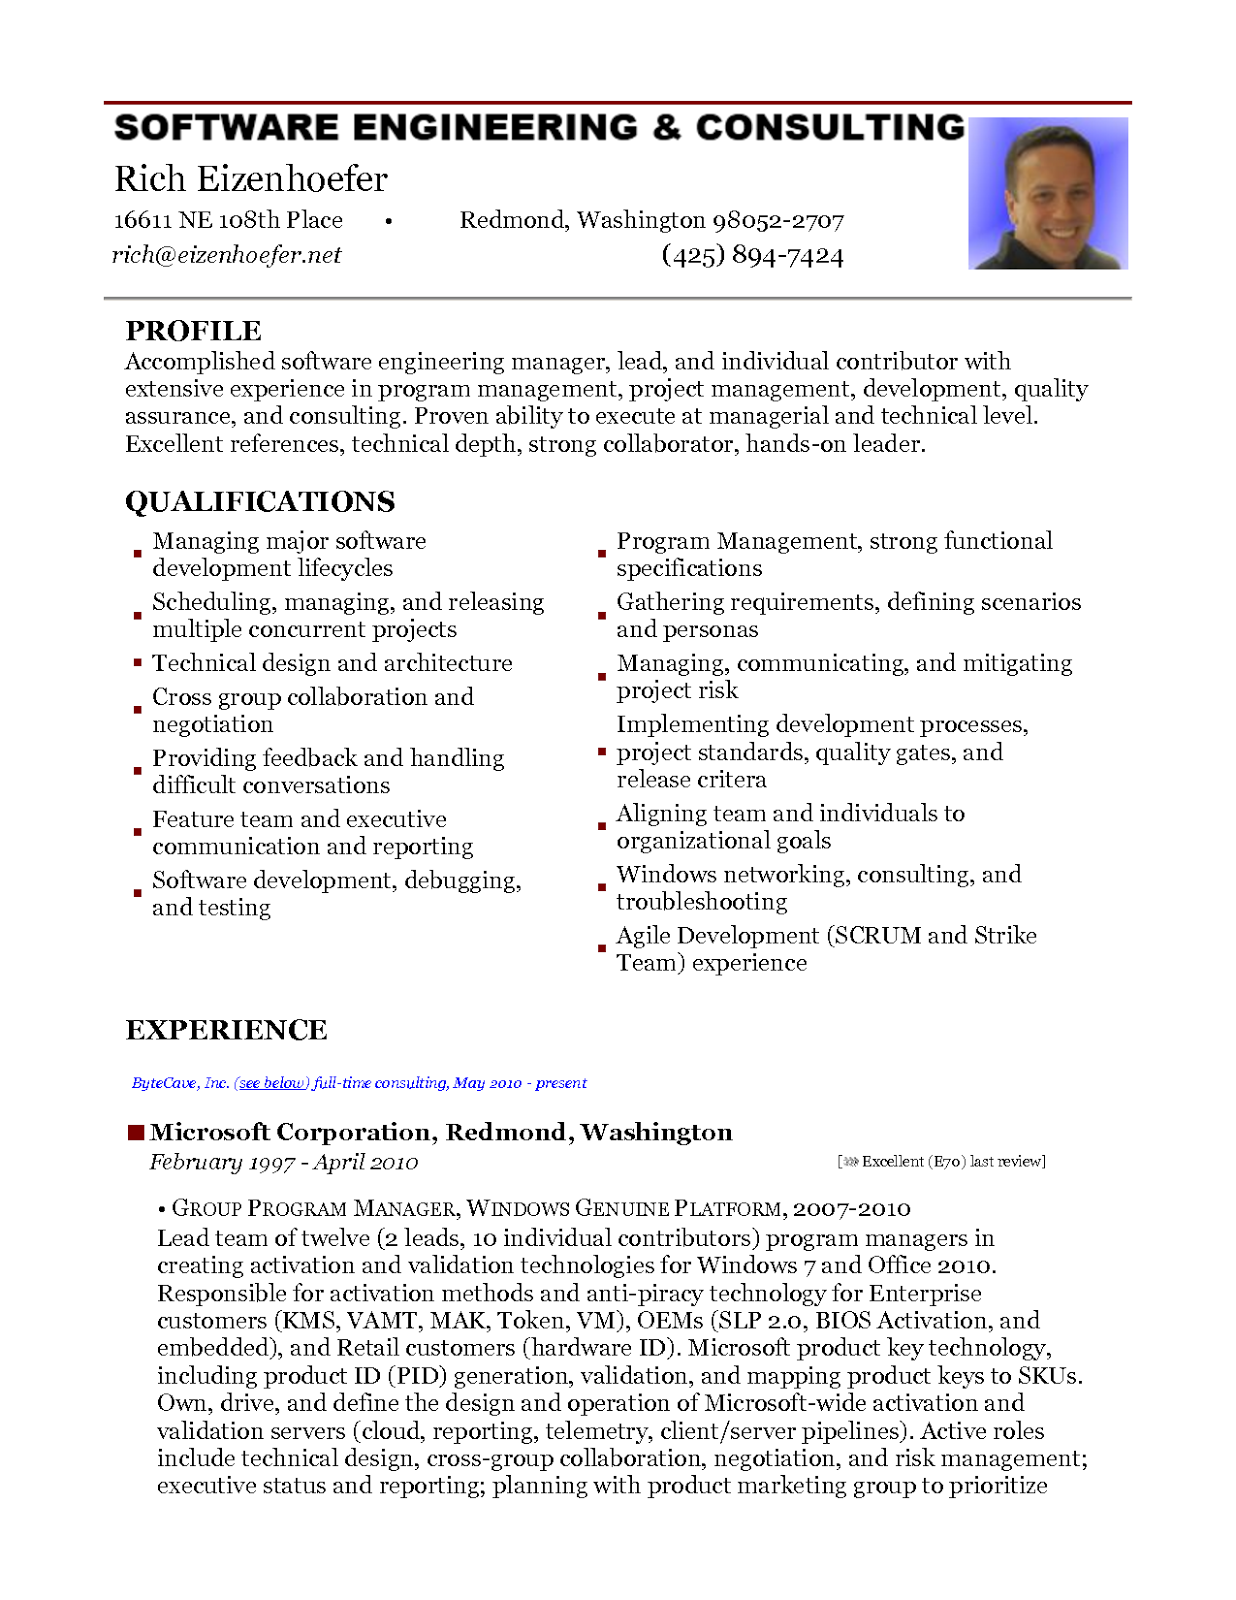 sample resume for experienced software test engineer - Resume Software Free